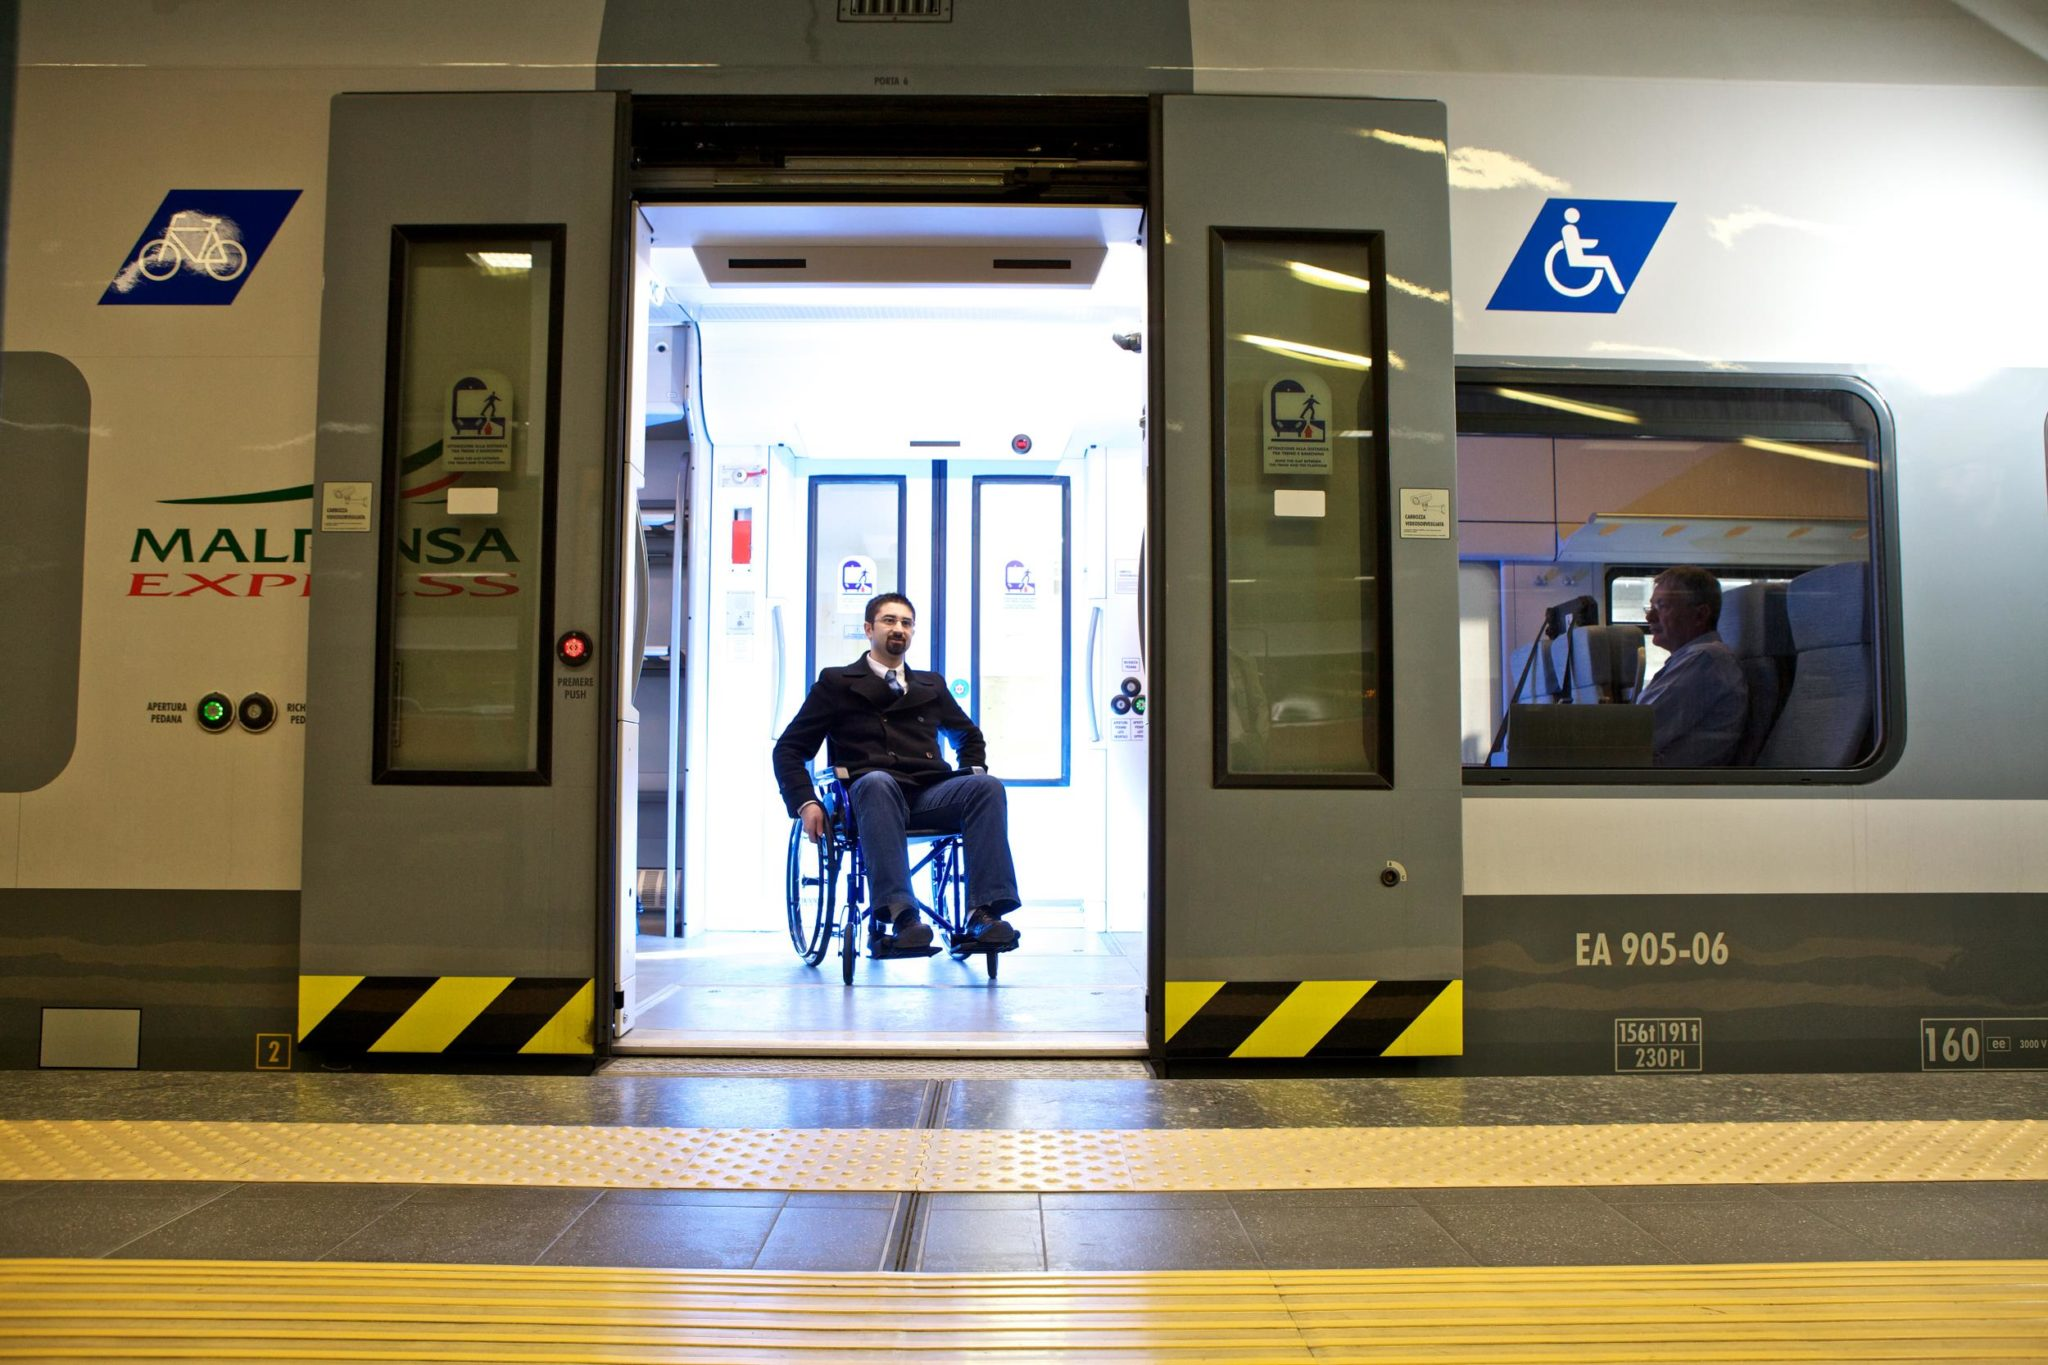 Alstom universal accessibility